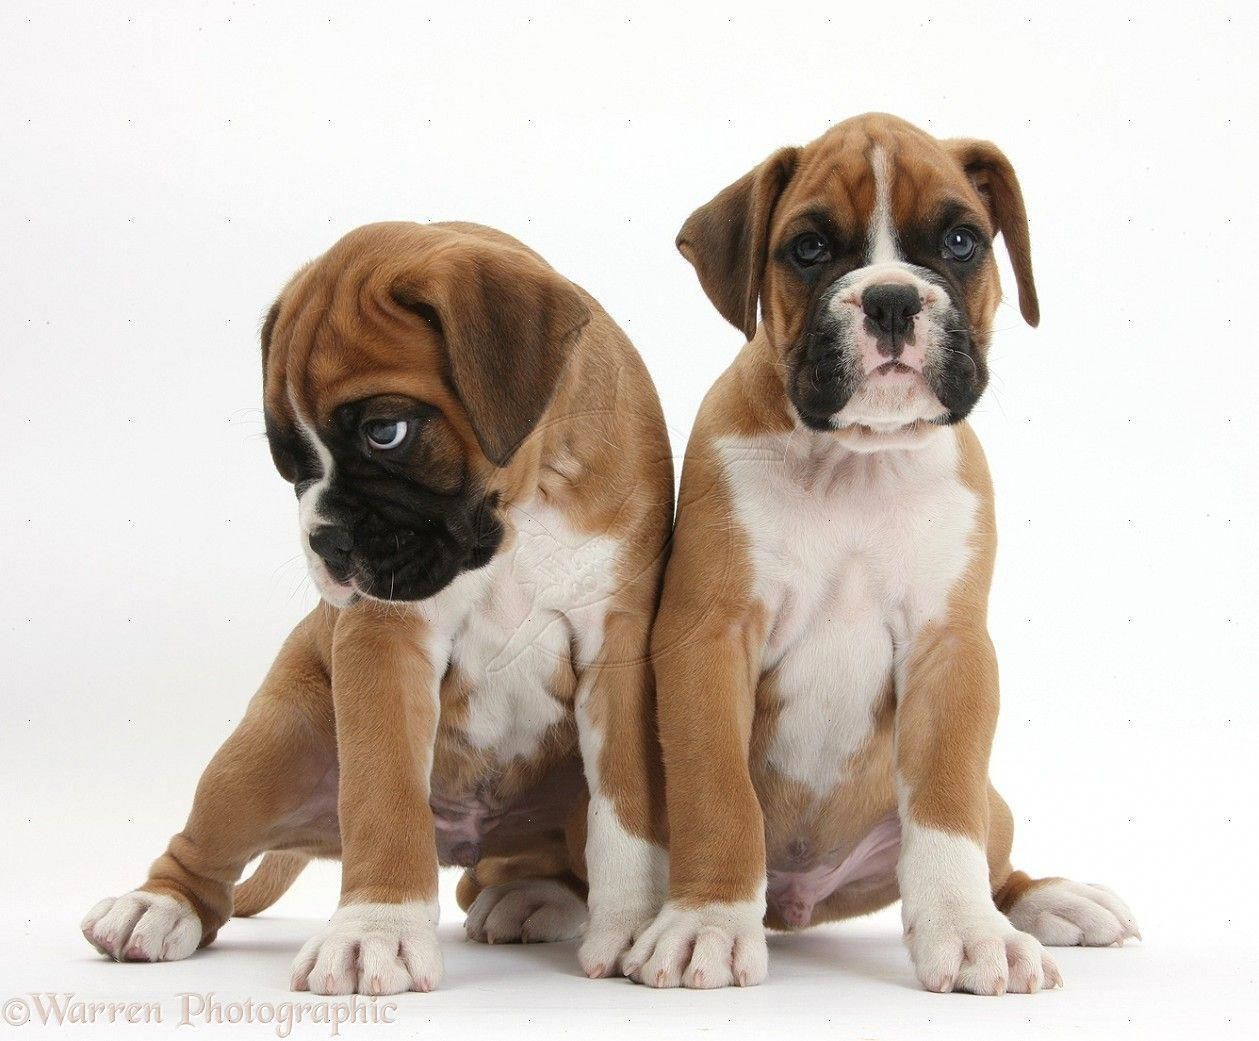 Receive Fantastic Suggestions On Boxer Pups They Are Actually Available For You On Our Web Site Boxerpups With Images Boxer Puppies Boxer Dogs Puppy Sitting